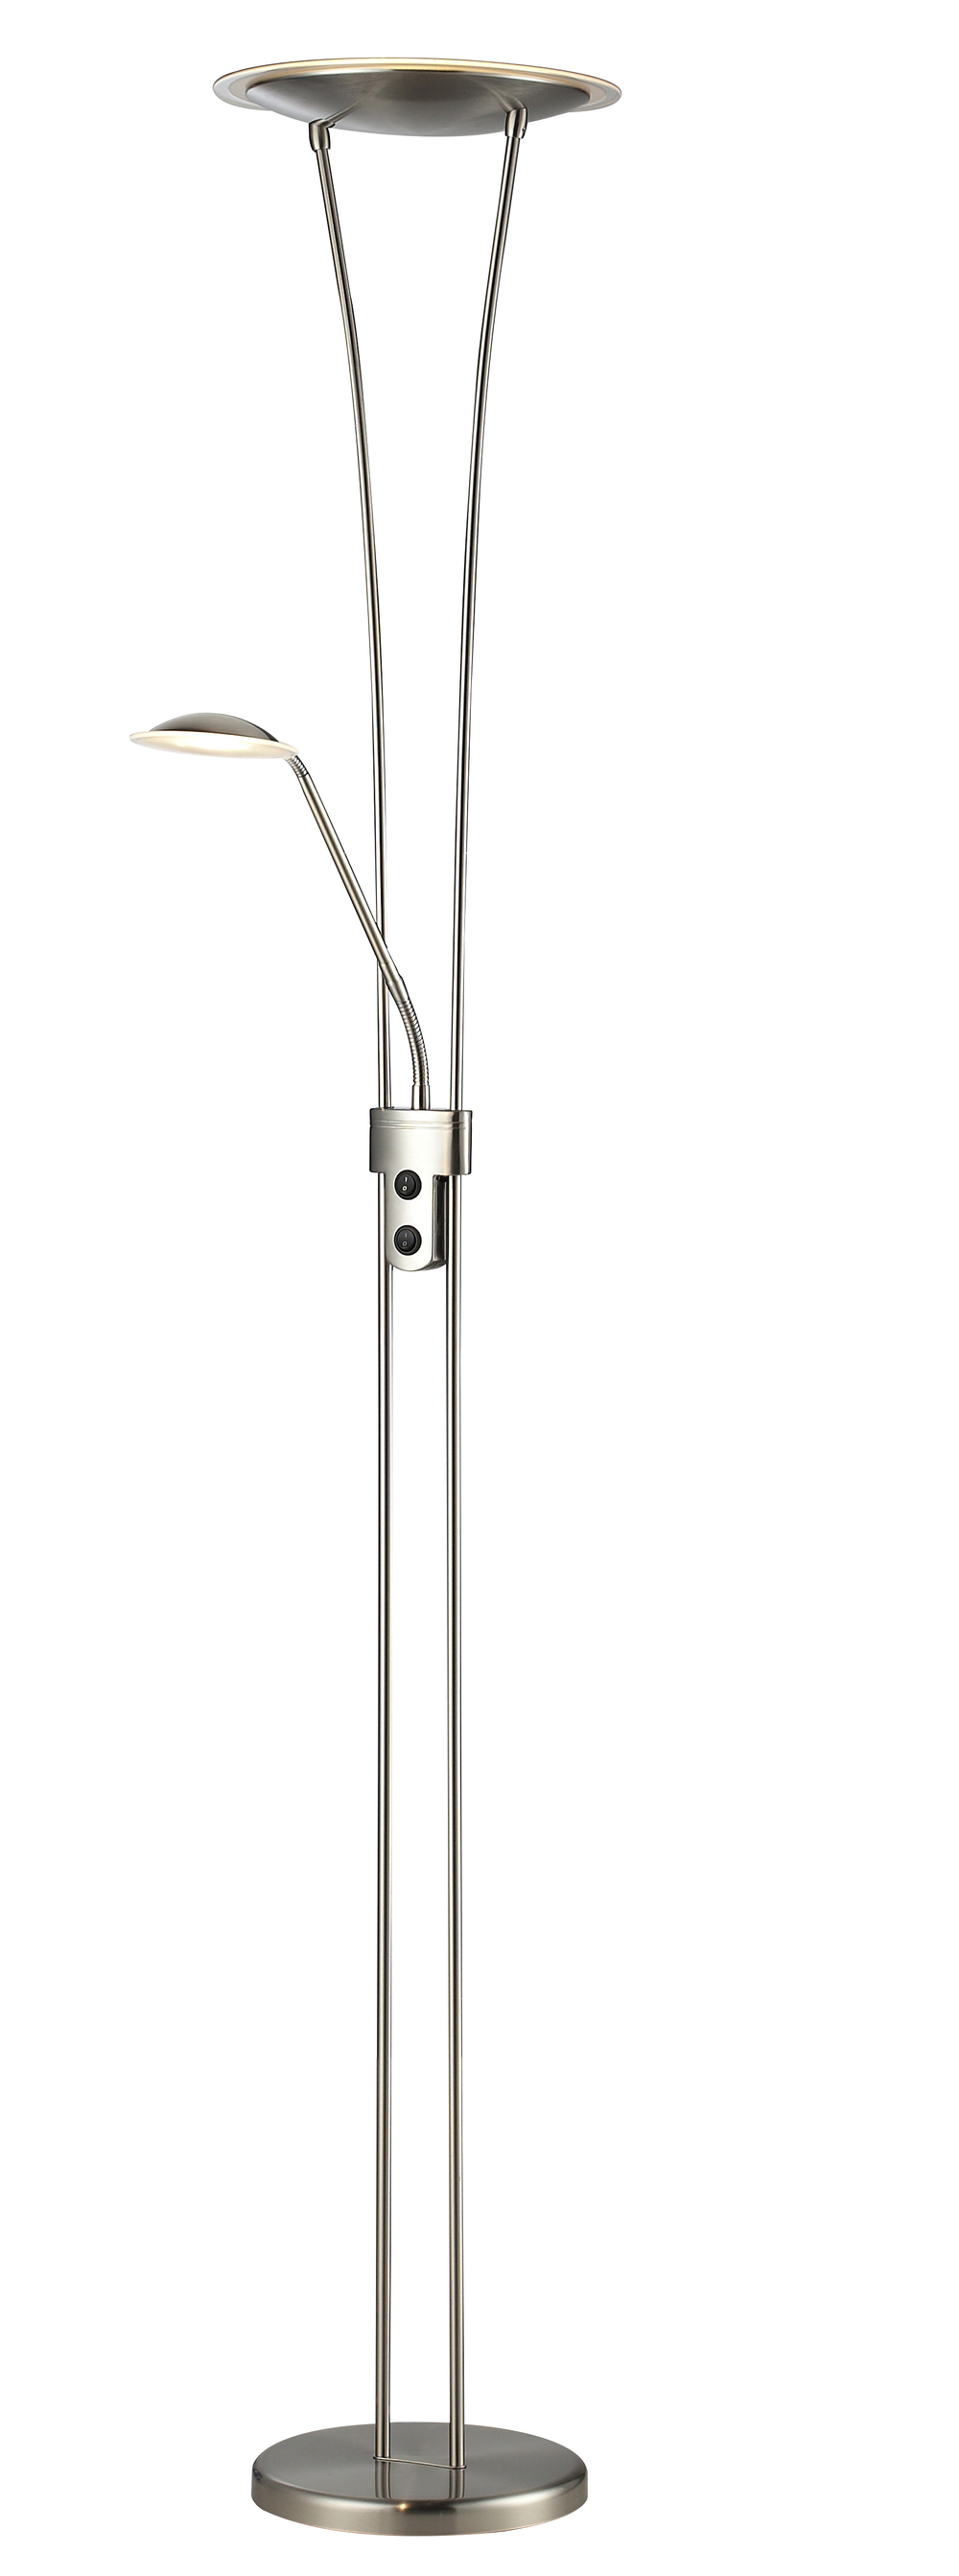 105686 | LED DOUBLE DUTCH FLOOR LAMP